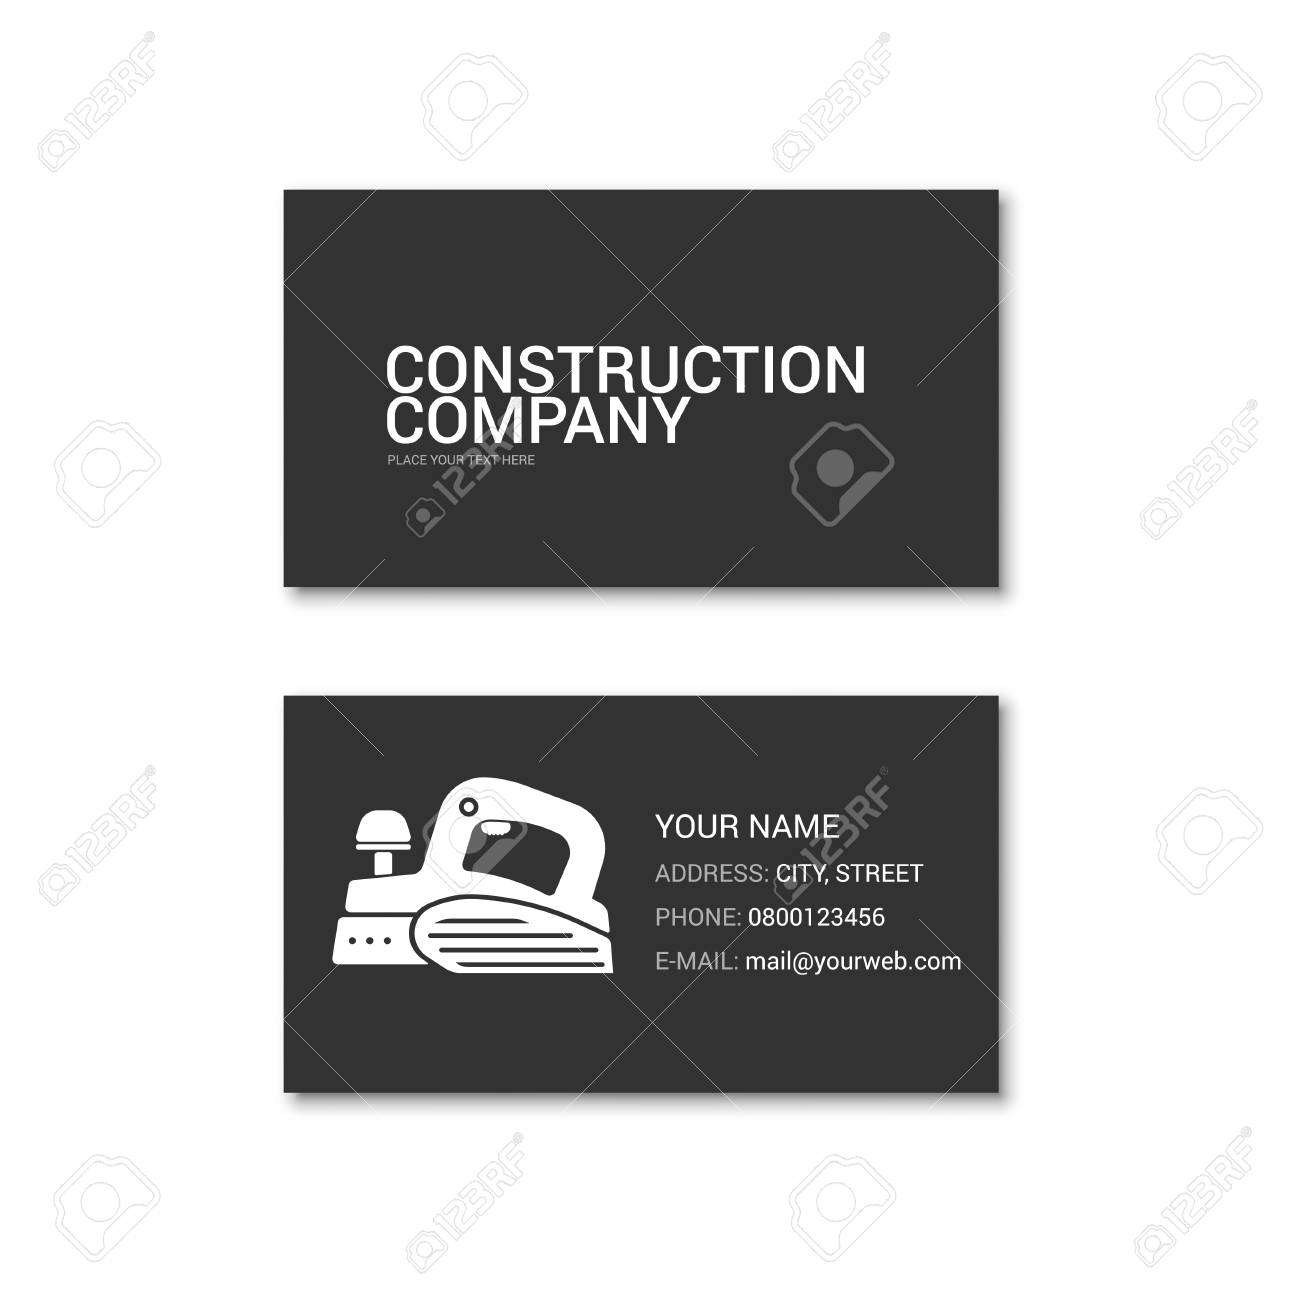 Simple business card of construction company. Technical support. Vector illustration isolated on a white background. - 79469385